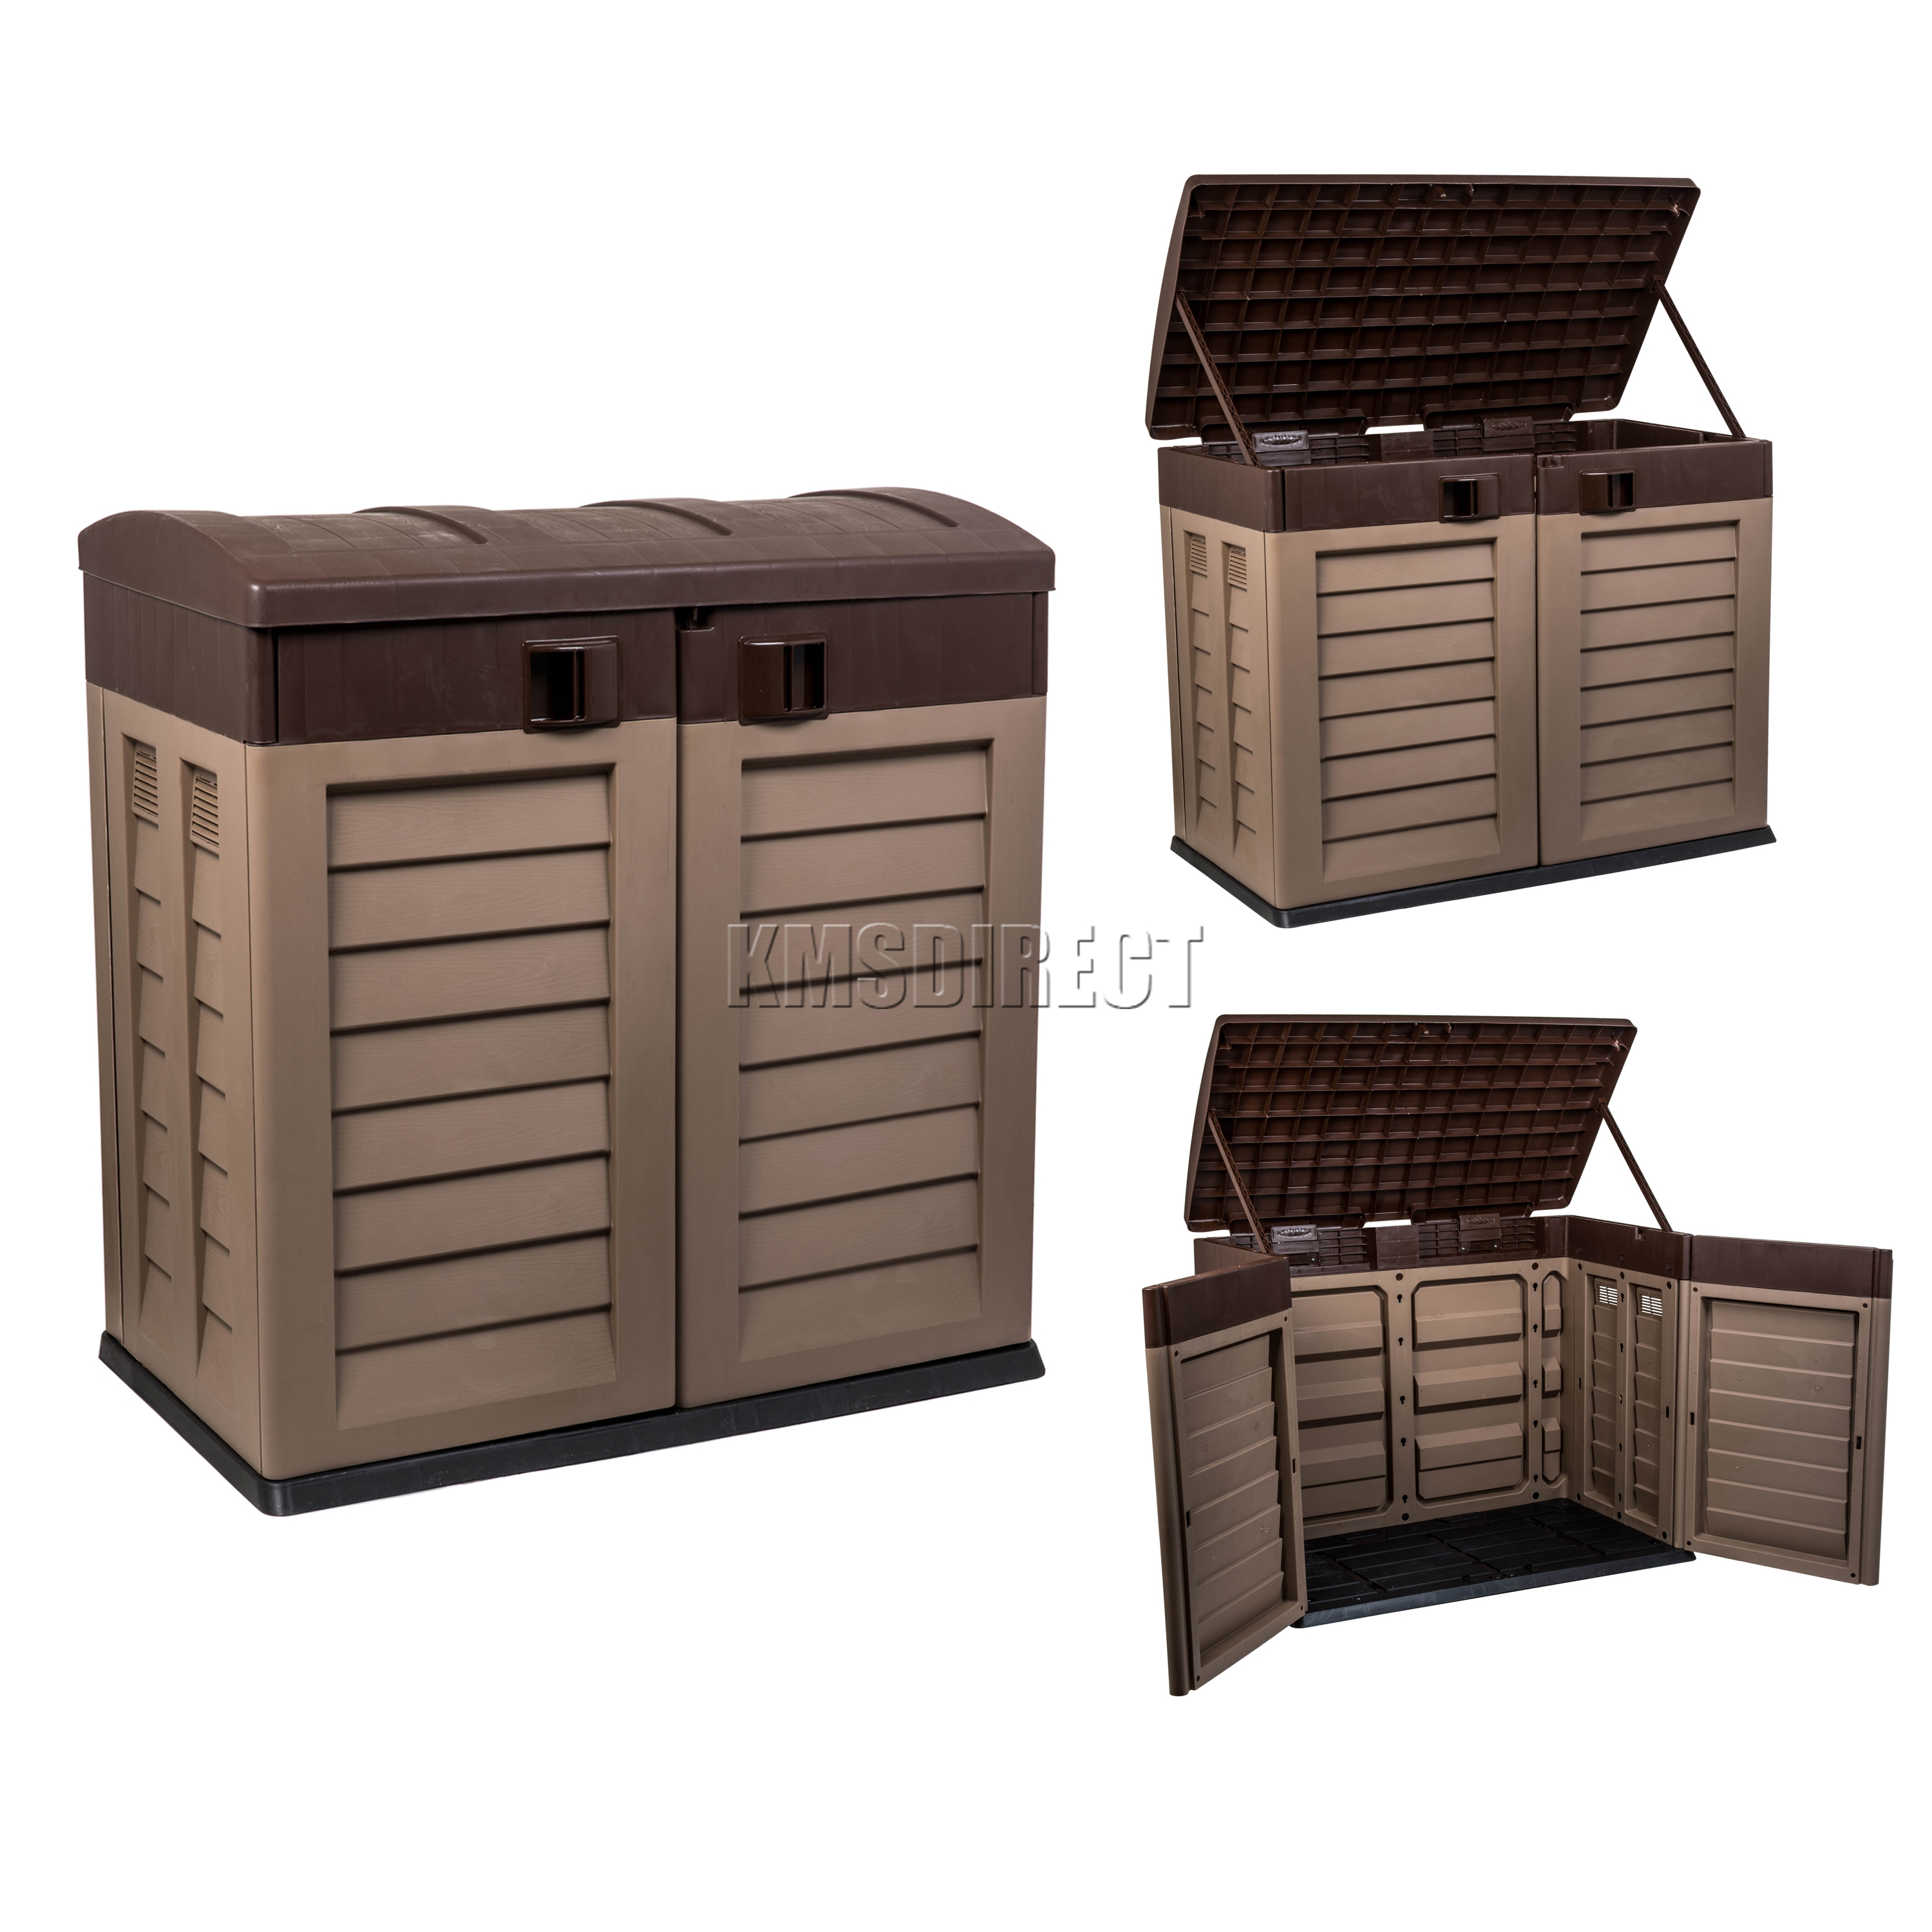 Starplast outdoor plastic garden low shed box chest - Outdoor plastic shed storage ...